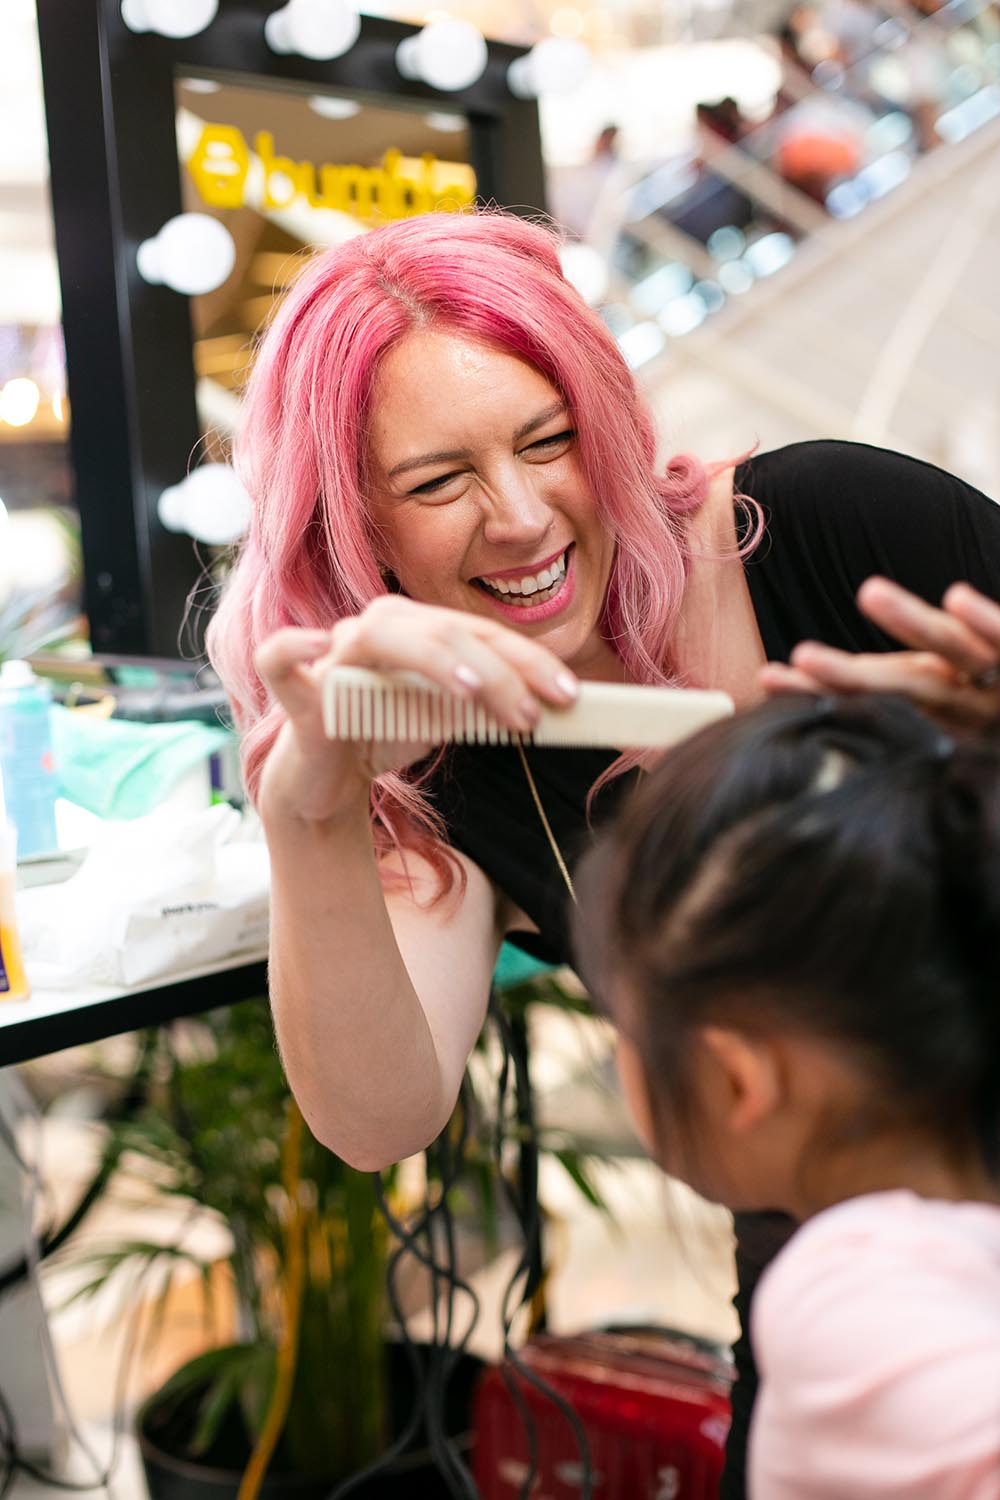 Optus x Samsung popup Melbourne - Hair Romance